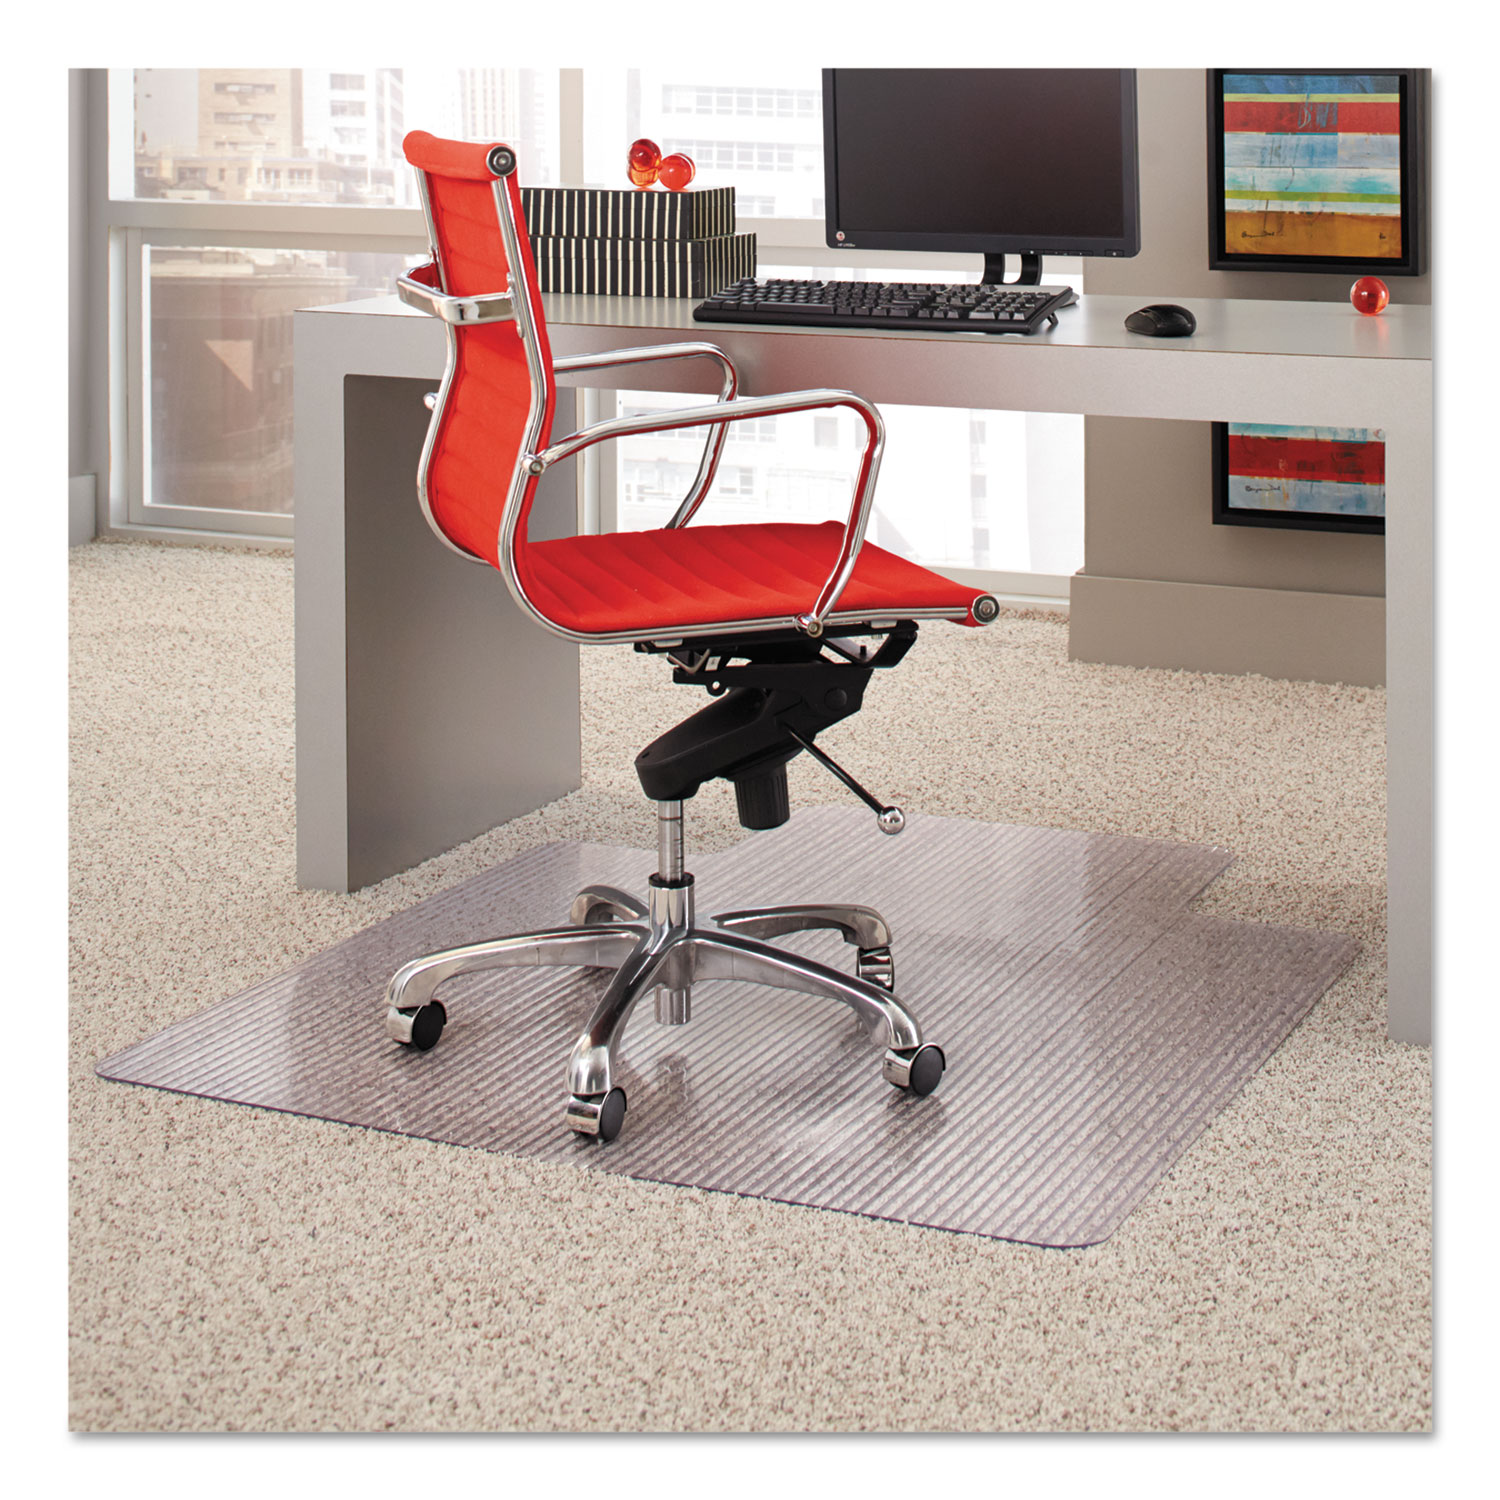 Dimensions Chair Mat For Carpet 45 X 53 With Lip Clear